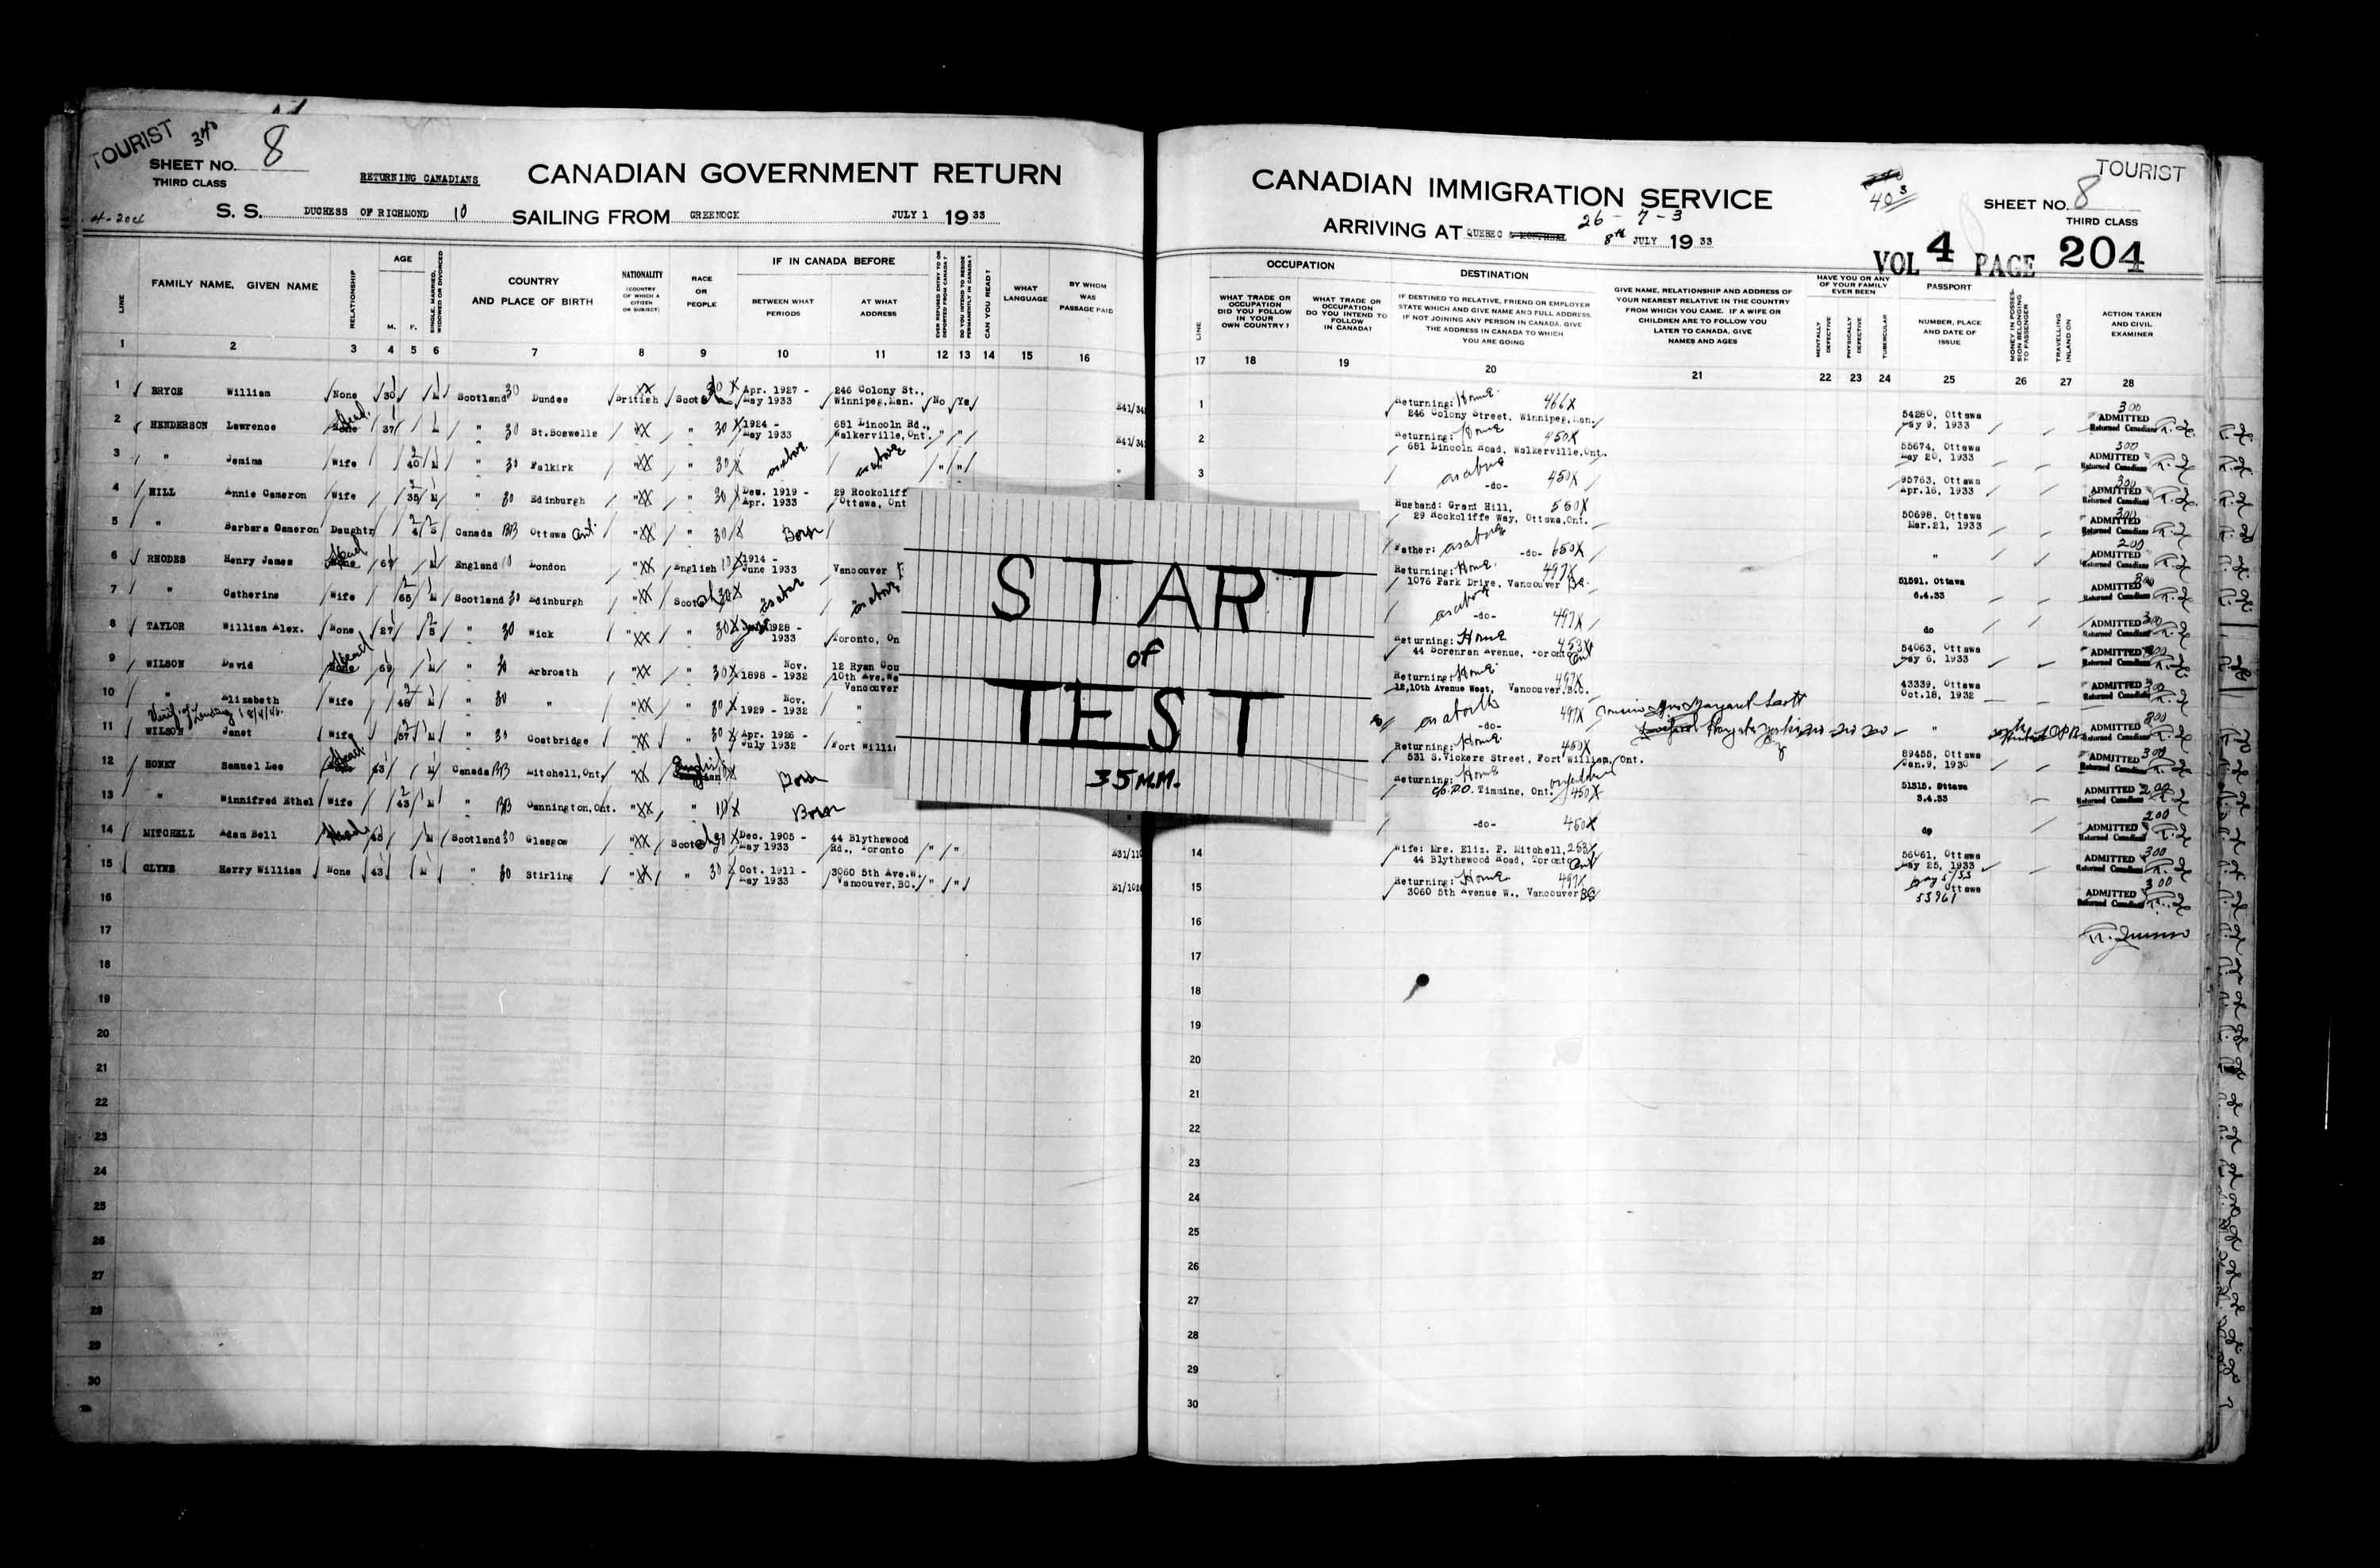 Title: Passenger Lists: Quebec City (1925-1935) - Mikan Number: 134839 - Microform: t-14783